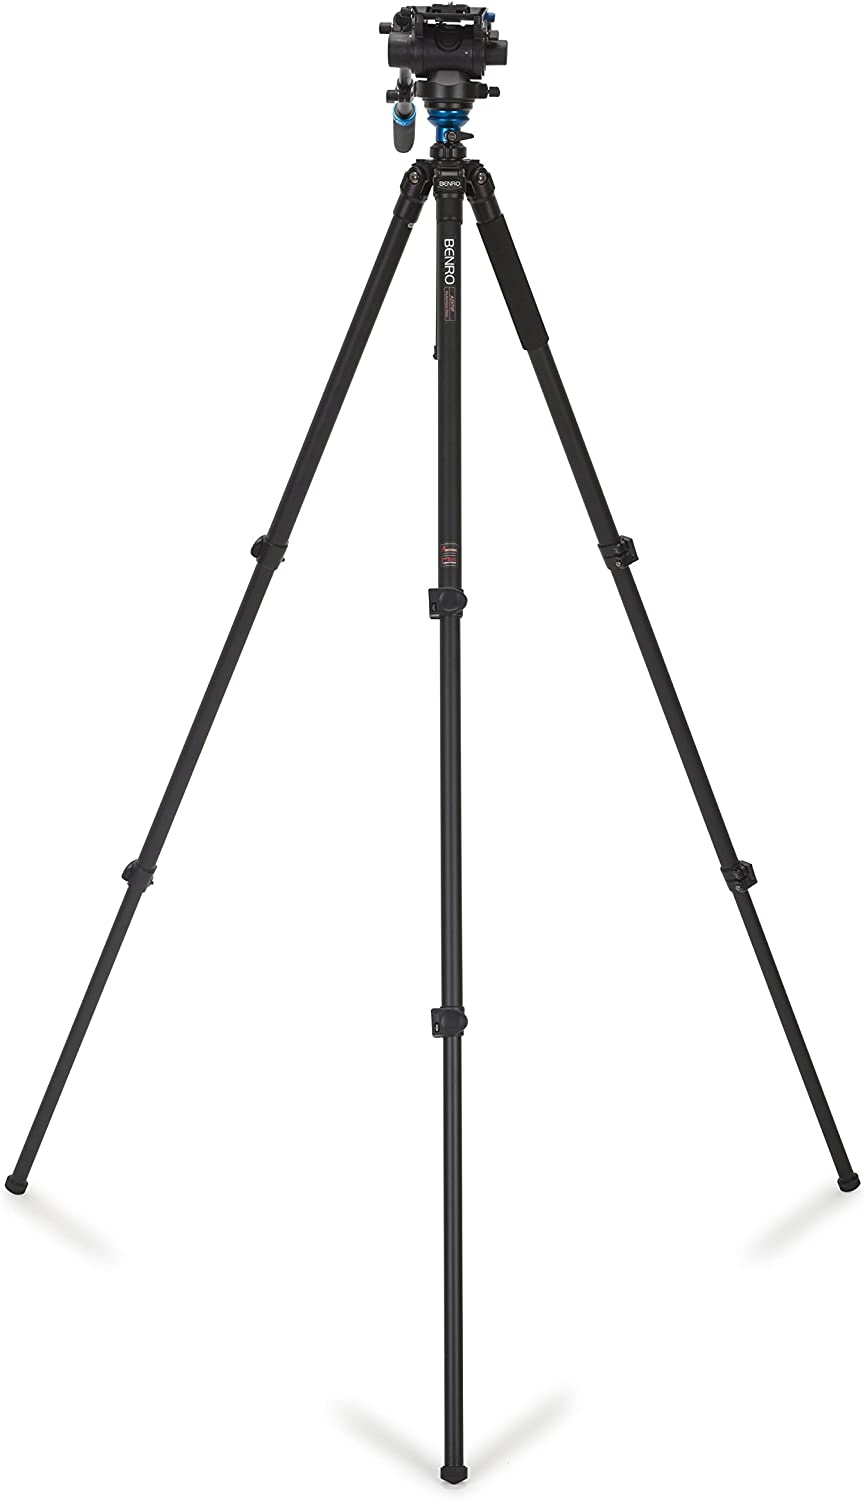 Benro S2 Series Video Head Tripod Stand for Camera